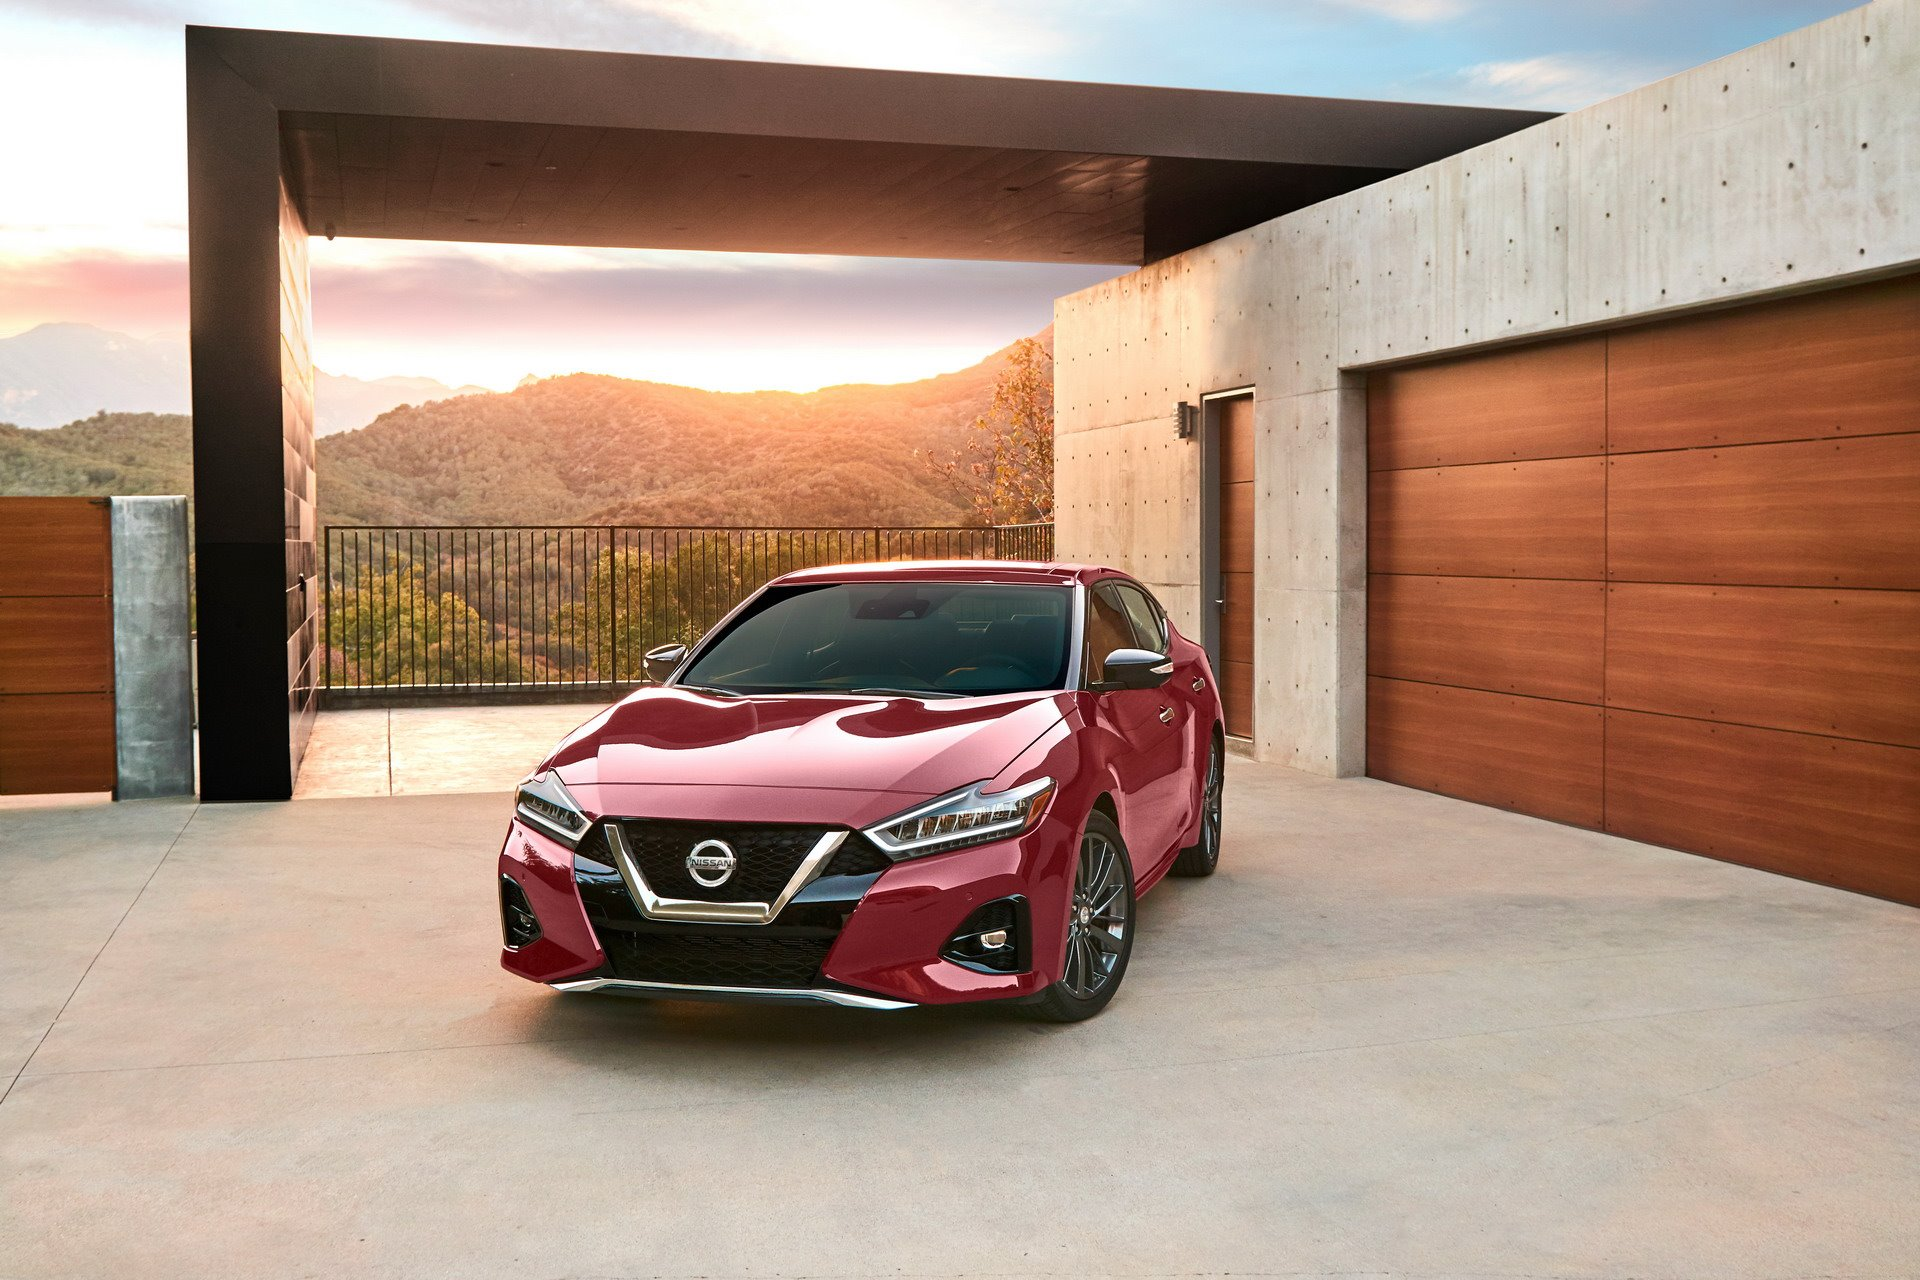 New 2019 Nissan Maxima Platinum Platinum for sale $41,540 at M and V Leasing in Brooklyn NY 11223 1